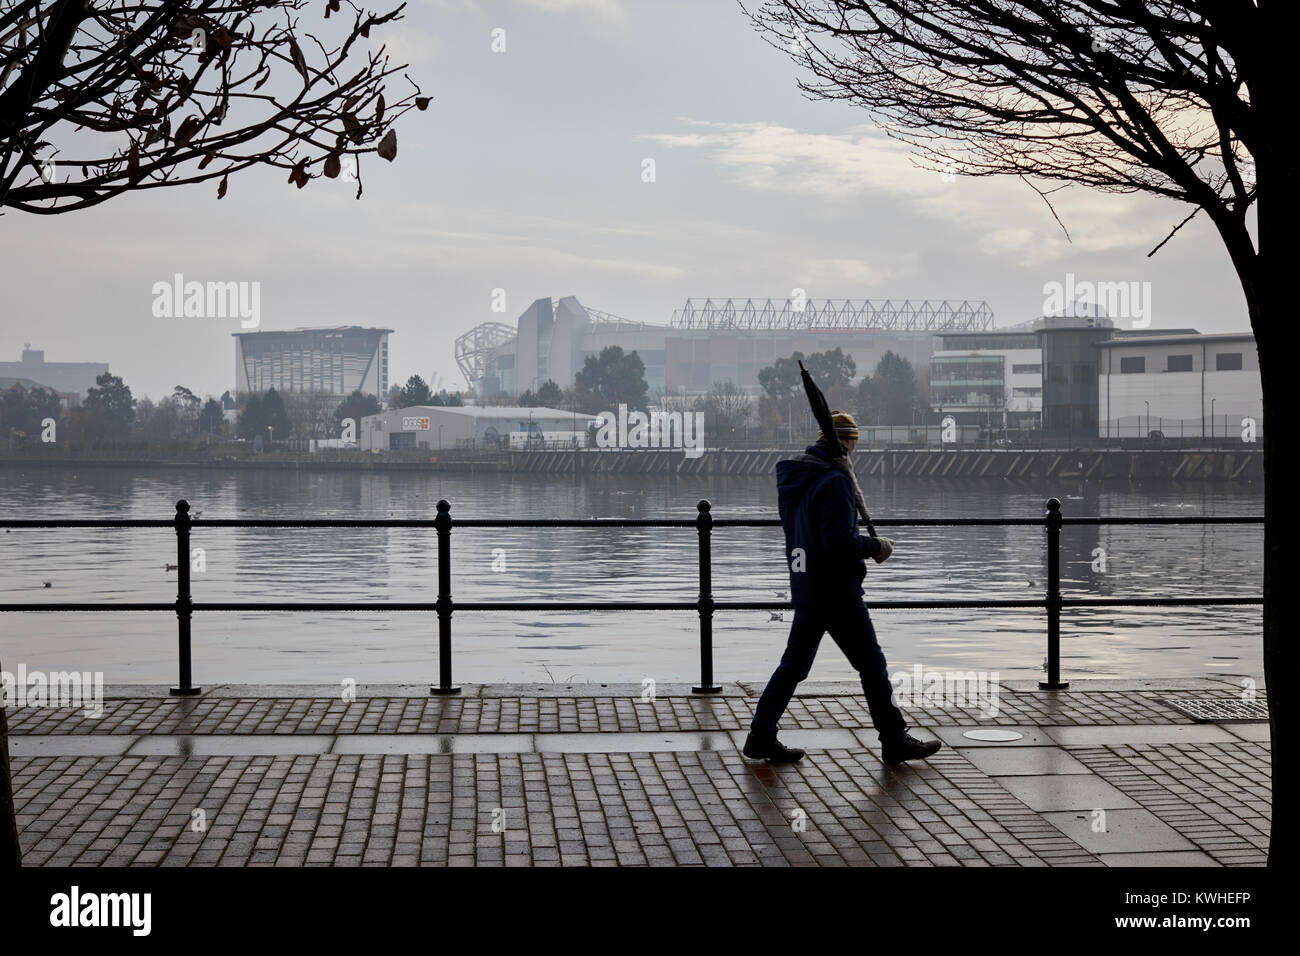 A dull , wet, foggy day Old Trafford stadium, home of Manchester United Football Club seen across the Ship Canal - Stock Image